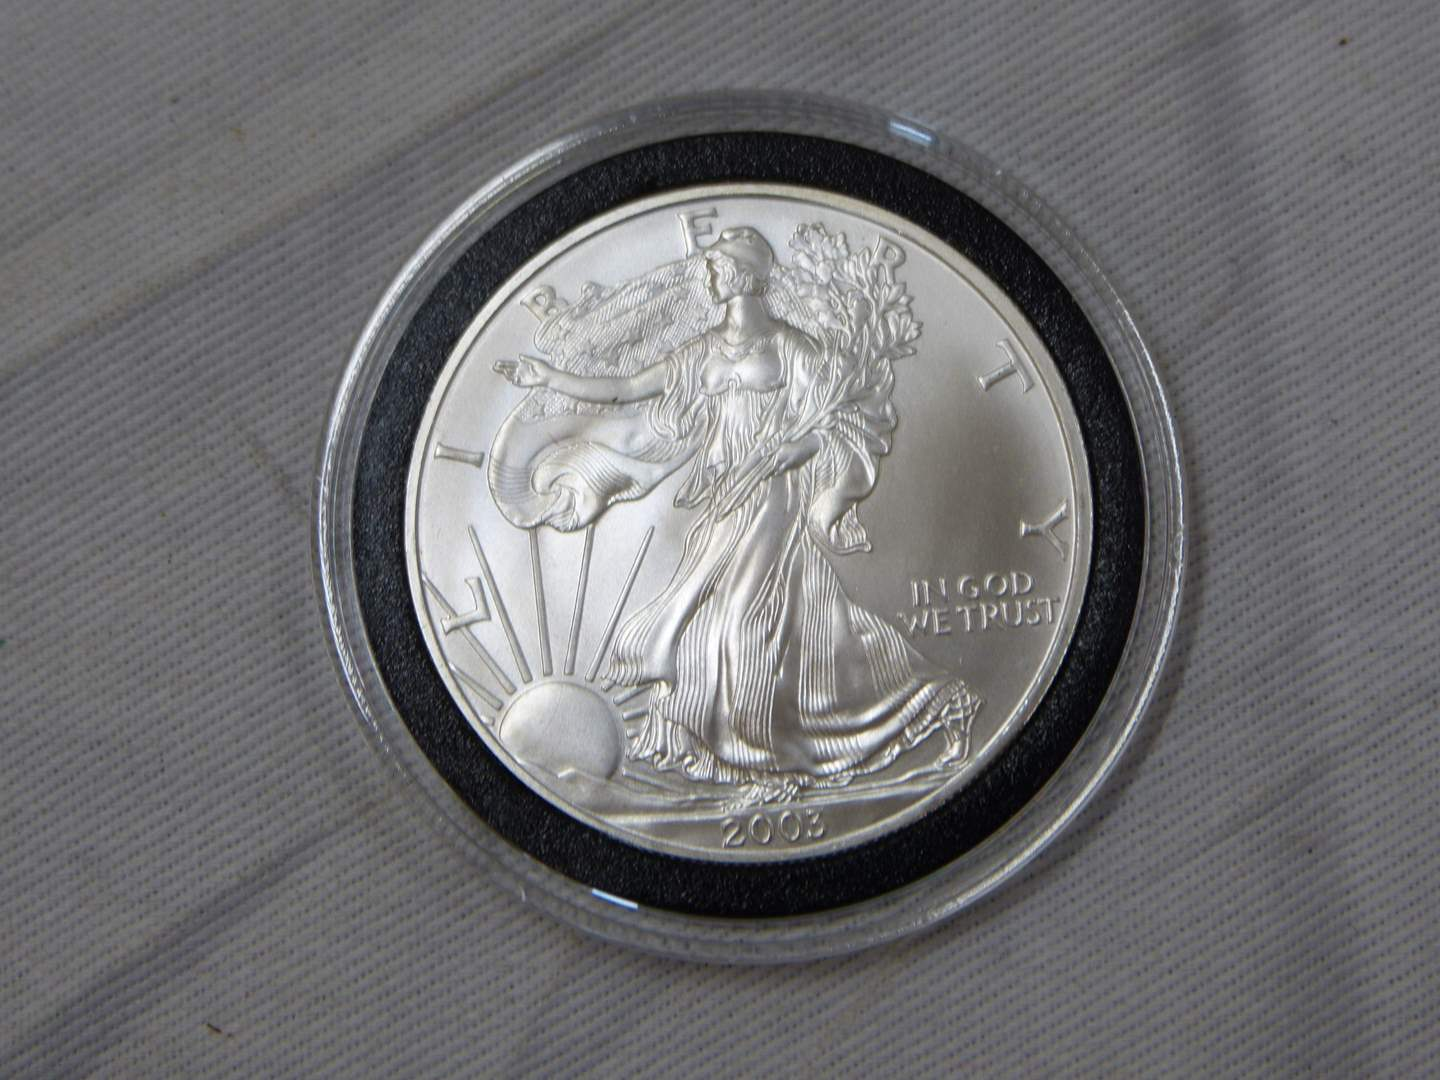 Lot # 202 2003  .999 One Ounce Eagle uncirculated condition w/protective case (main image)